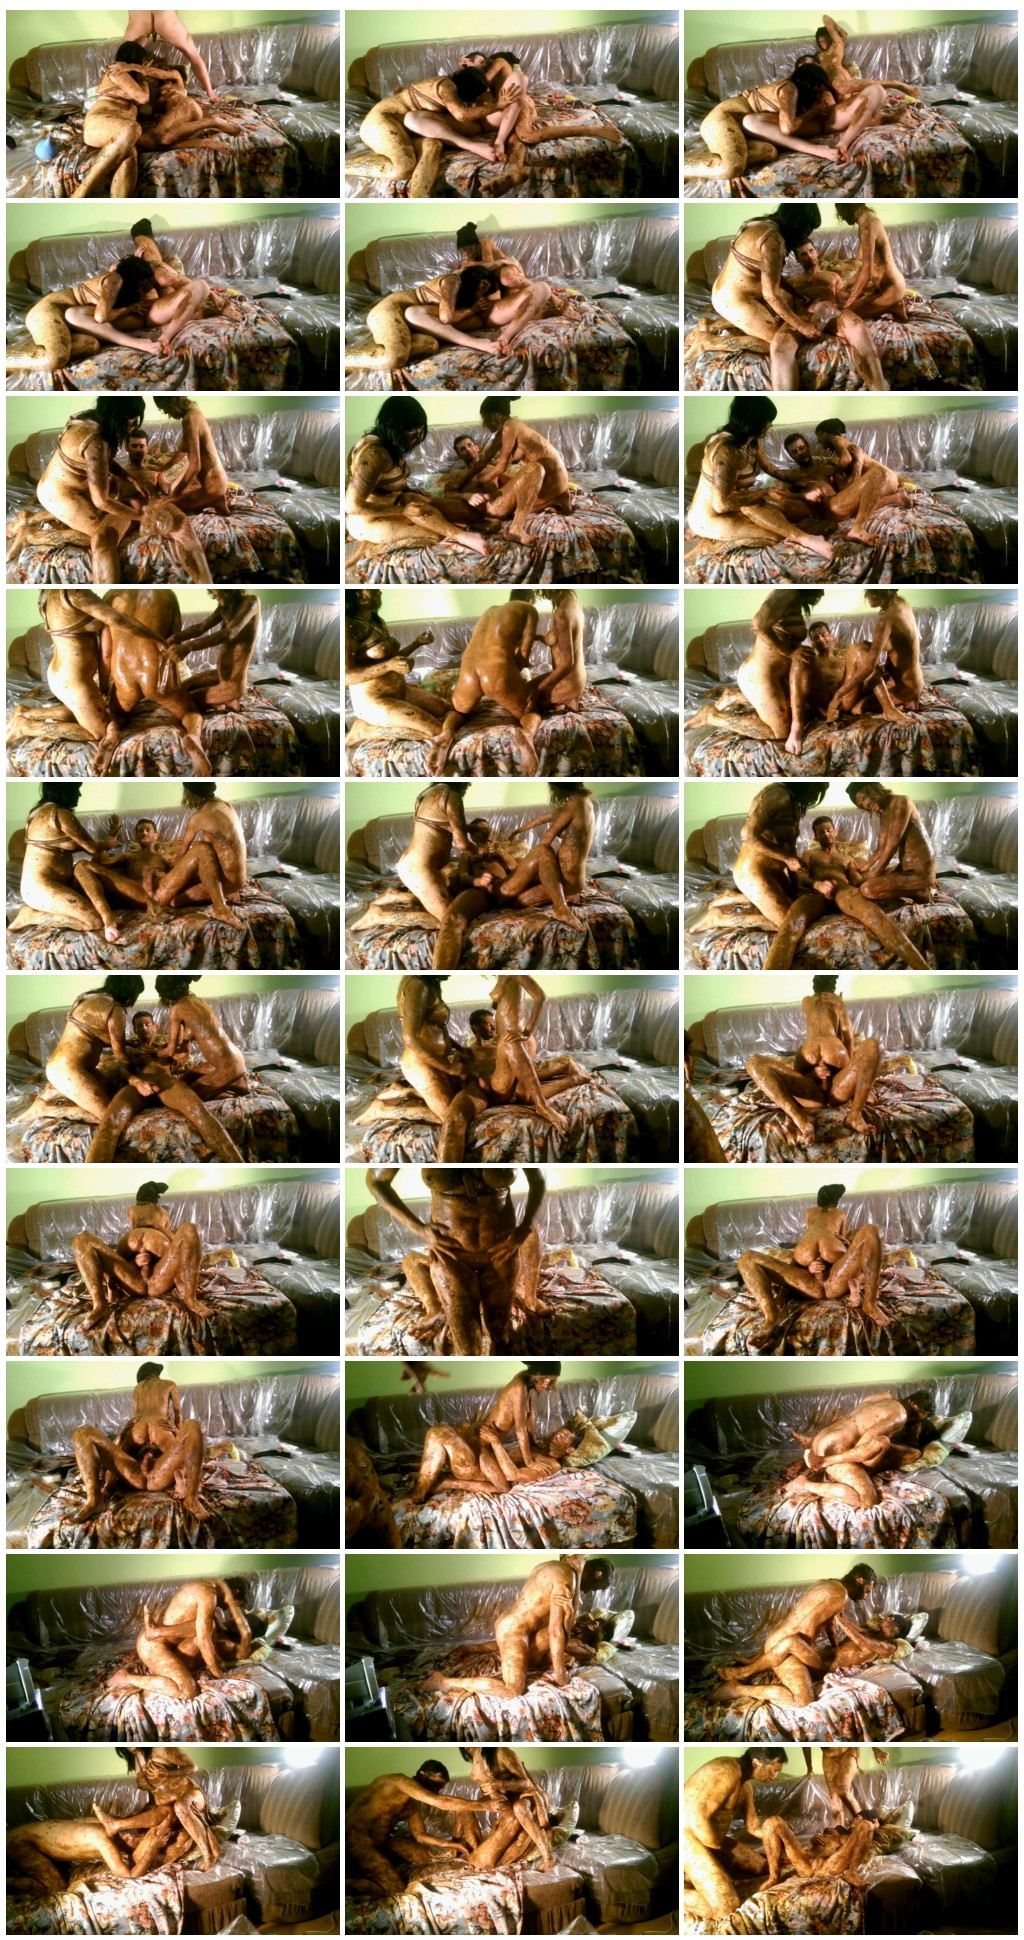 AstraCelestial Extreme Scat Orgy Part 5 of 6 thumb - AstraCelestial - Extreme Scat Orgy Part 5 of 6